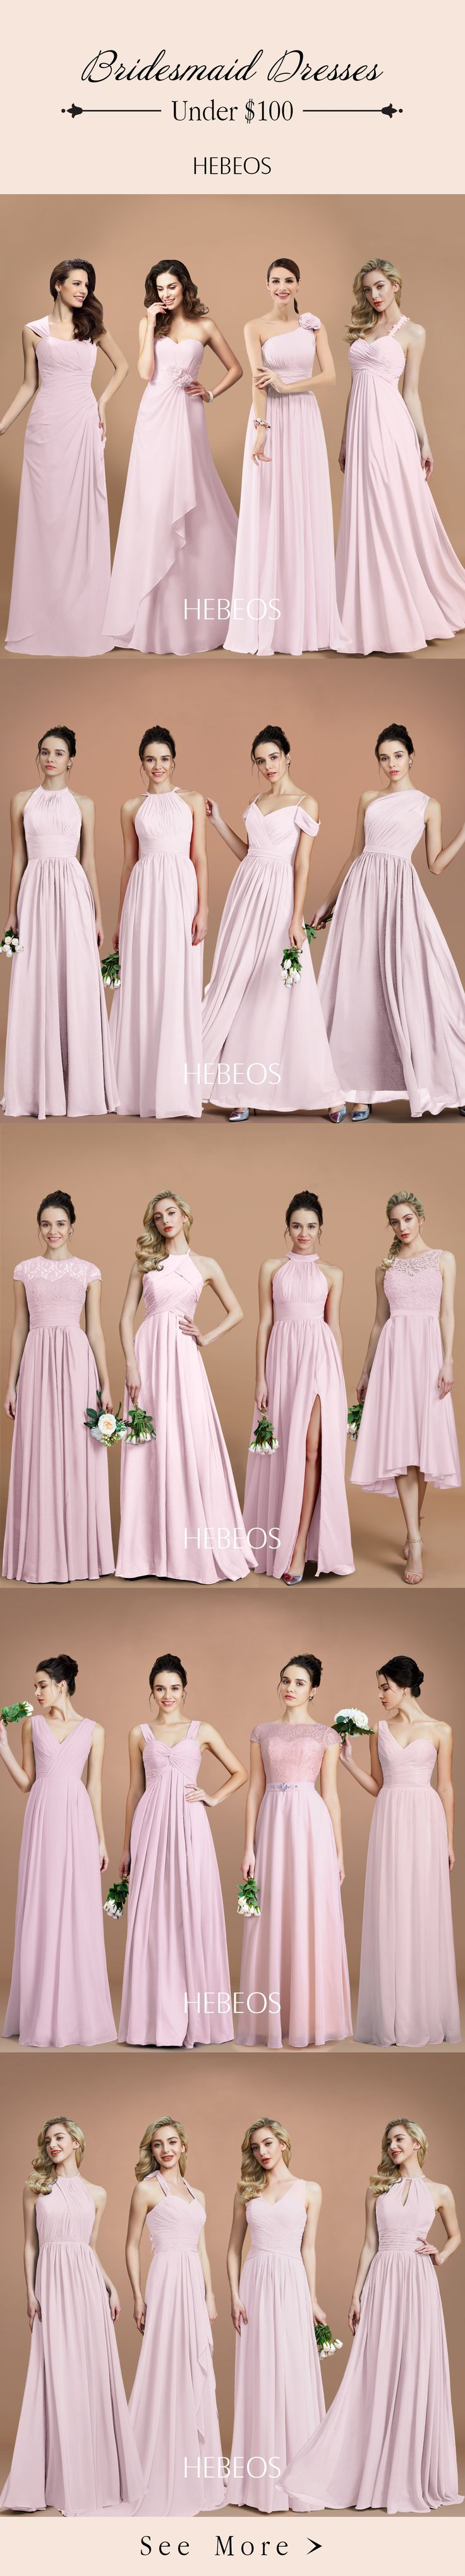 Searching for pink or coral bridesmaid dresses? Shop at HEBEOS.com  to find stunning coral colored bridesmaid dresses for under 100 in short, long & lace styles! #pinwedding #bridesmaid